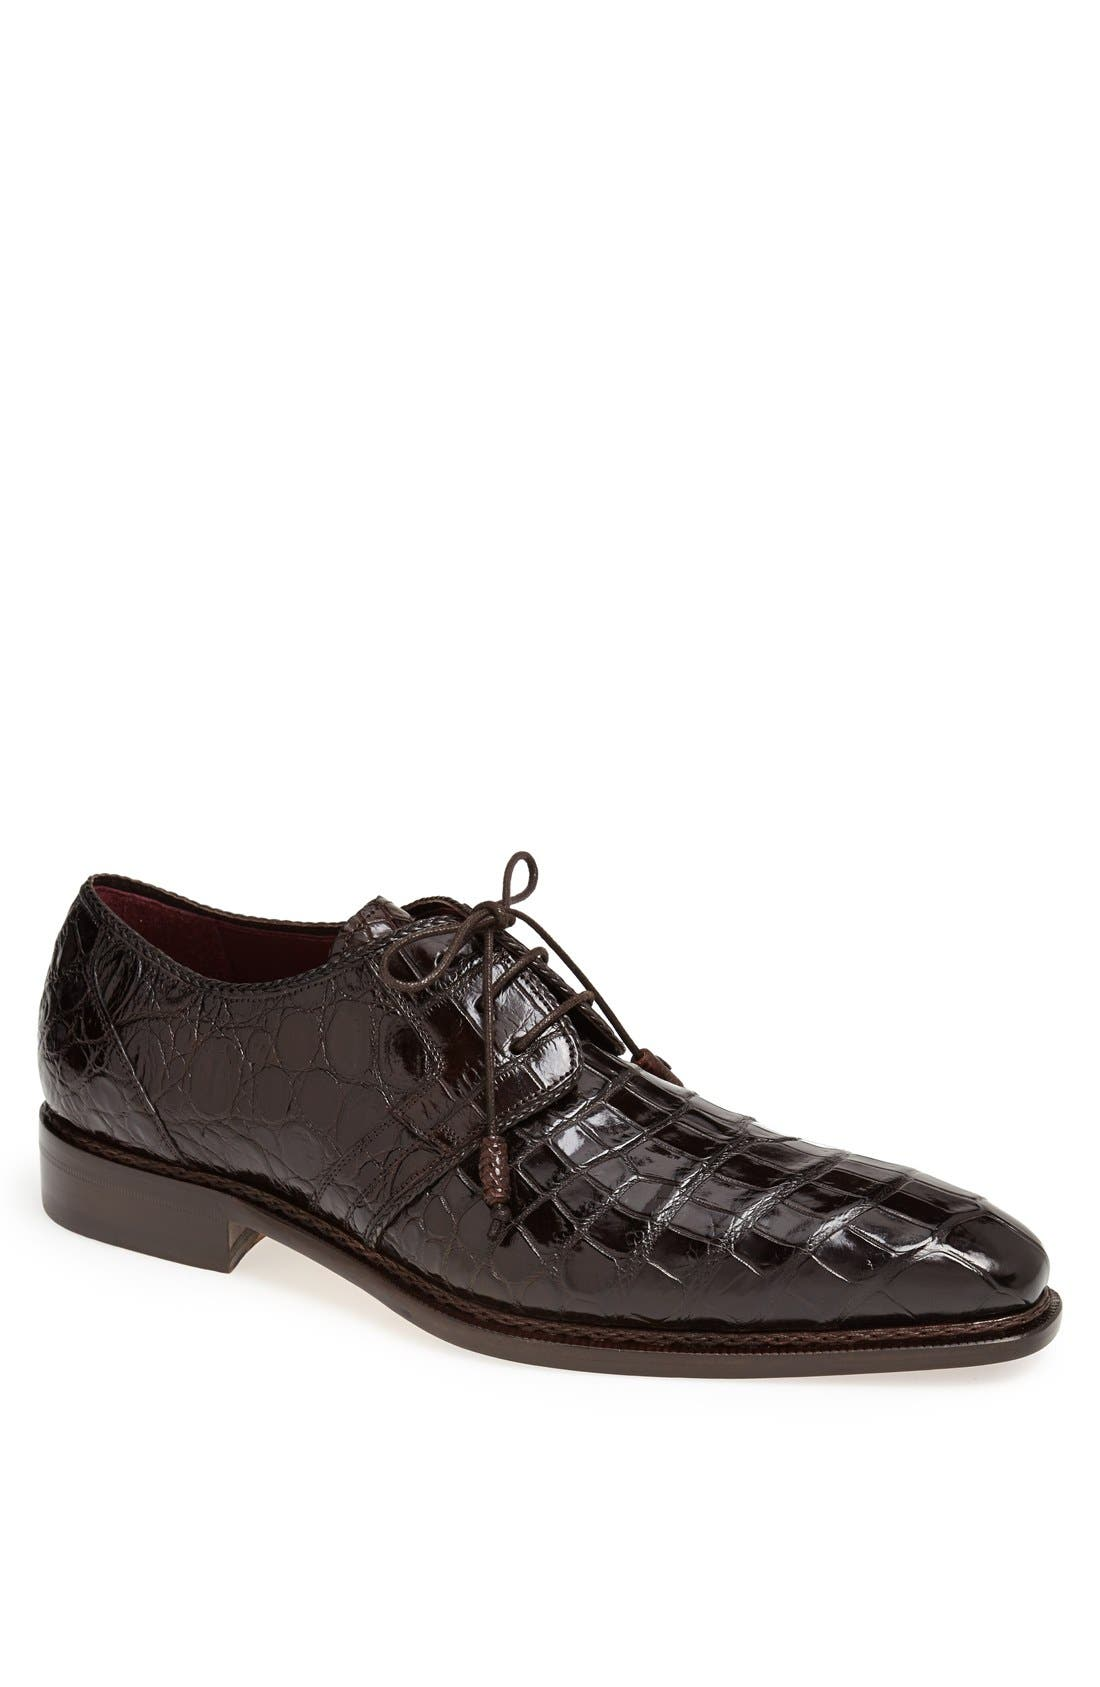 Mezlan 'Marini' Alligator Leather Derby